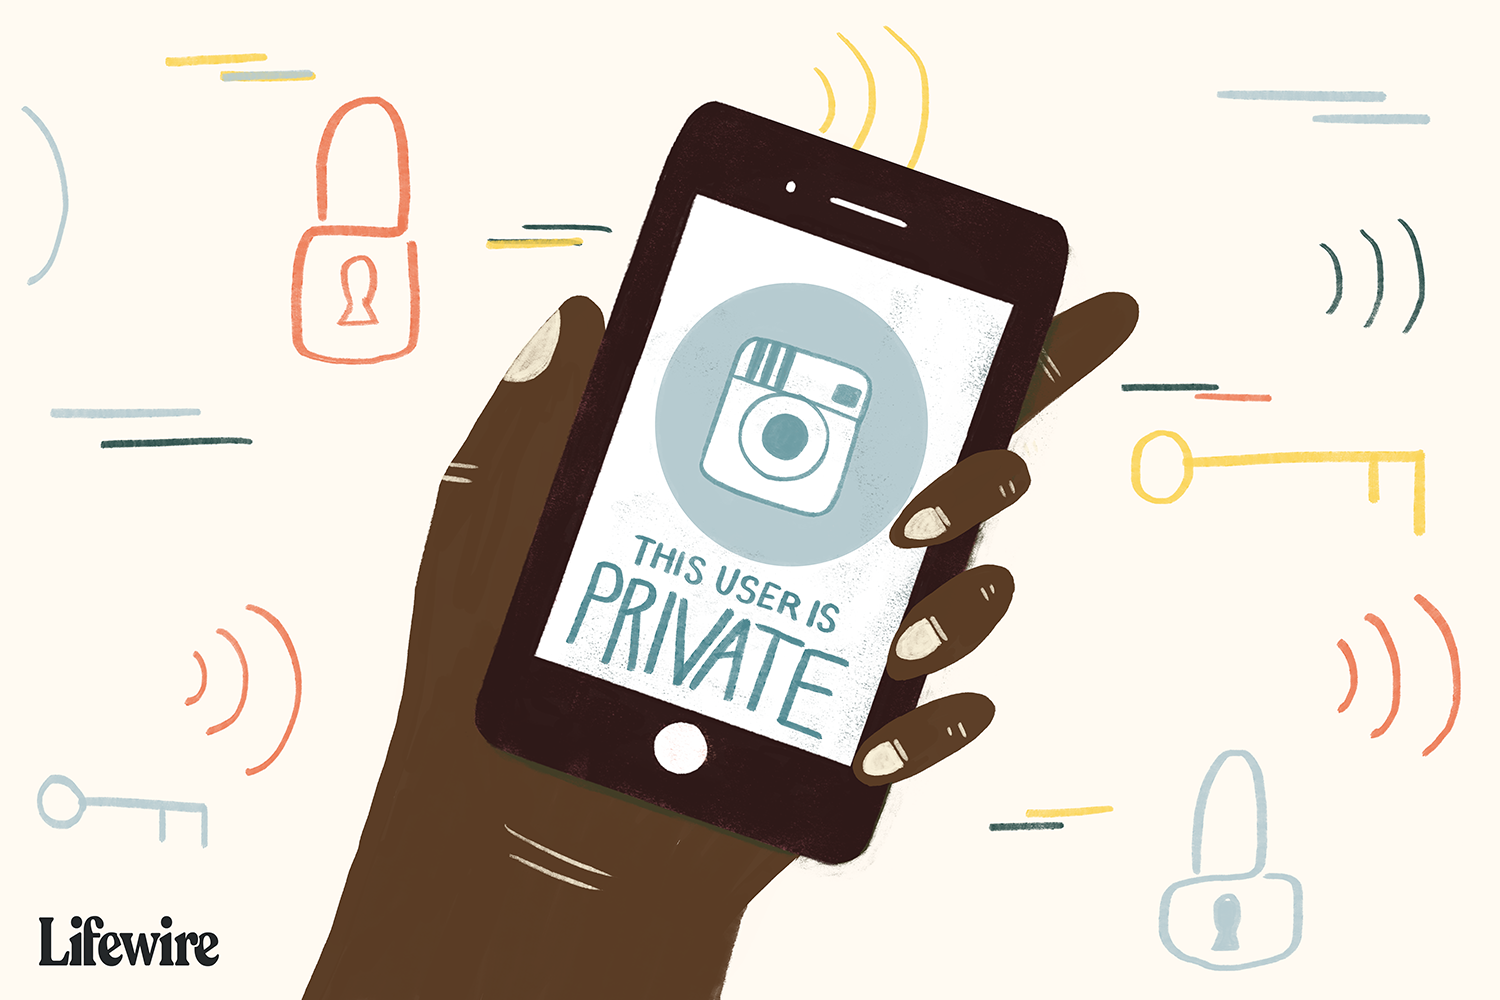 Here's How to Make Your Instagram Profile Private